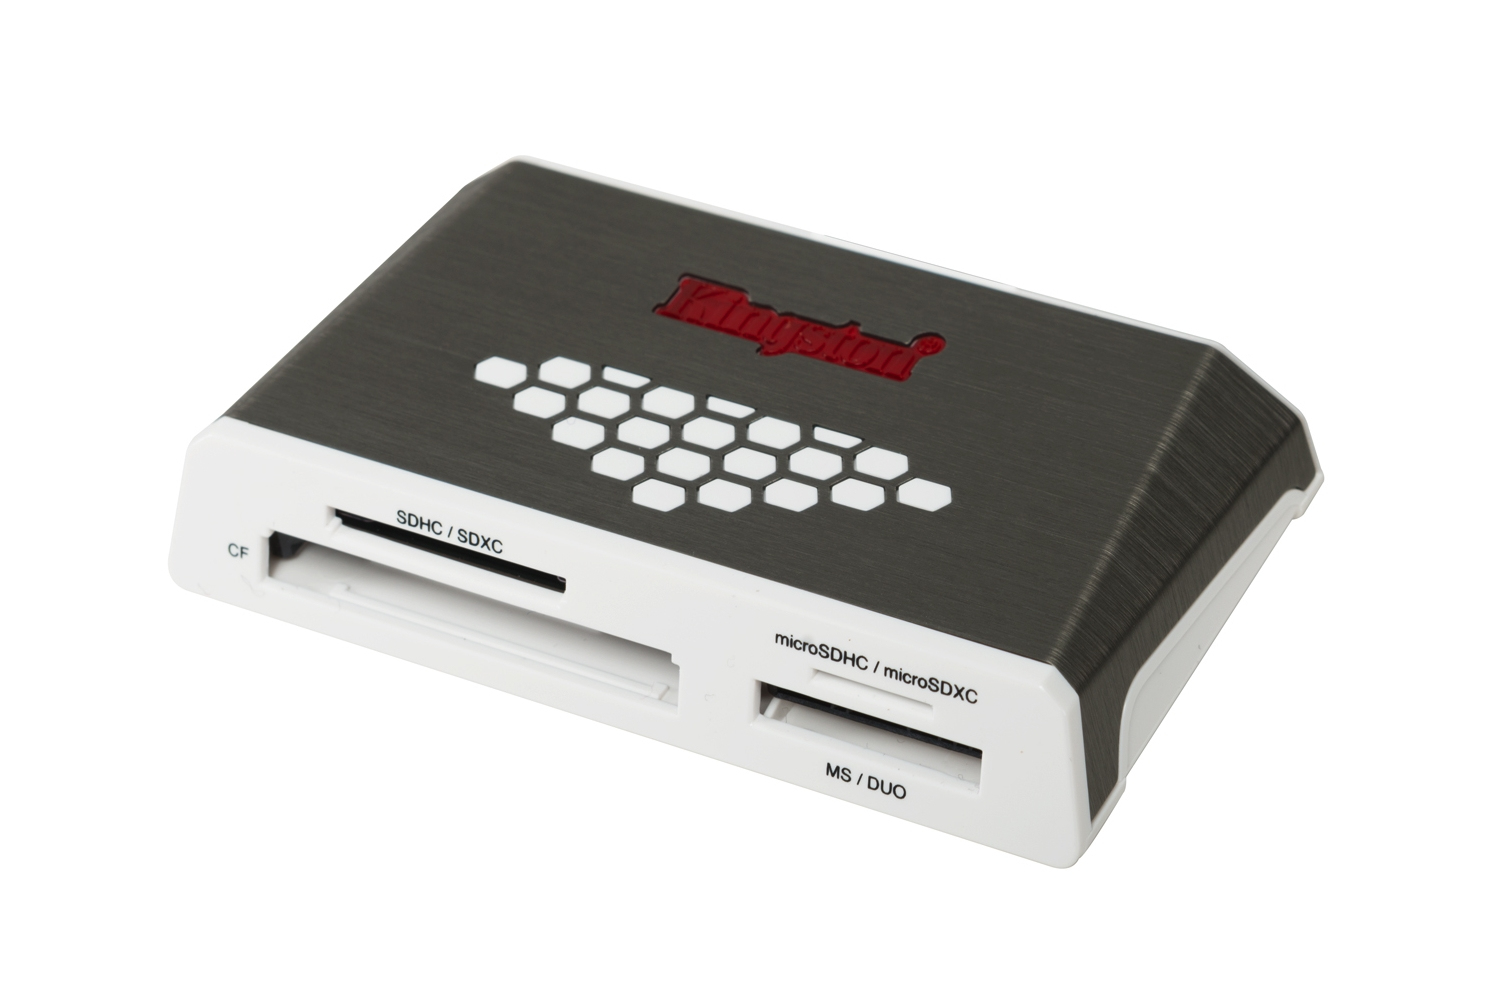 USB 3.0 High-speed Media Reader (fcr-hs4)